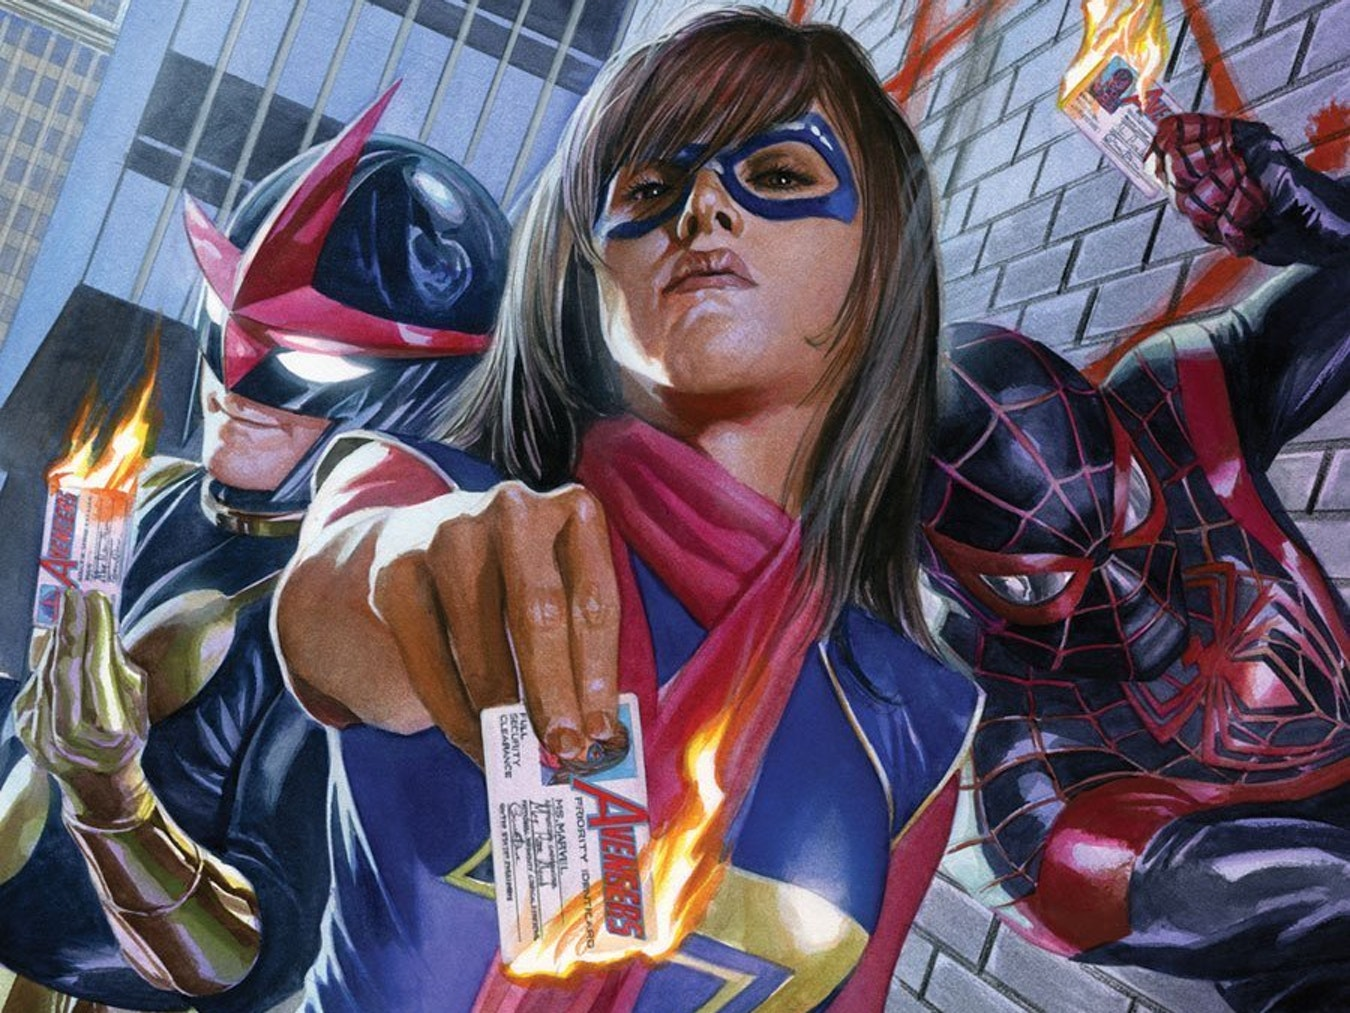 Marvel's Champions Could Be the Ultimate Teen Superhero Show